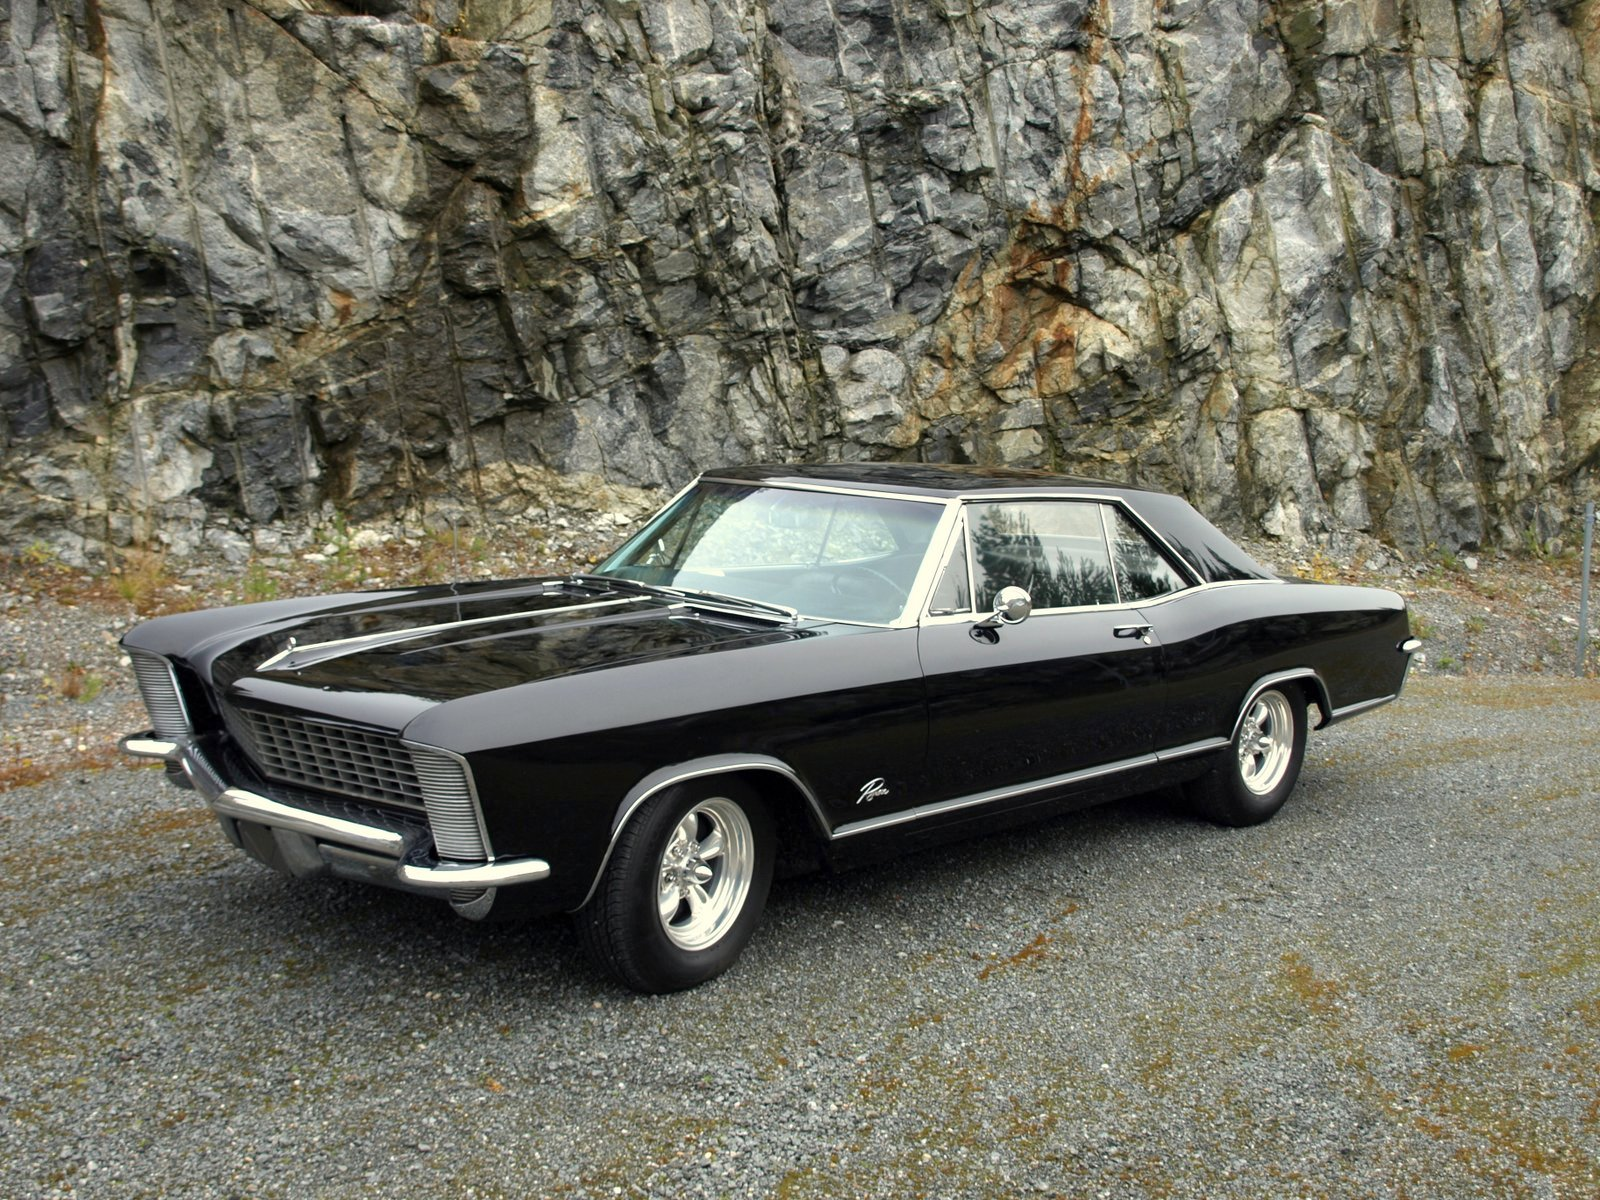 1965 buick riviera gran sport includes a dual quad super wildcat 425 v8 360 hp 268 kw engine a 3 42 axle ratio and stiffer heavy duty suspens